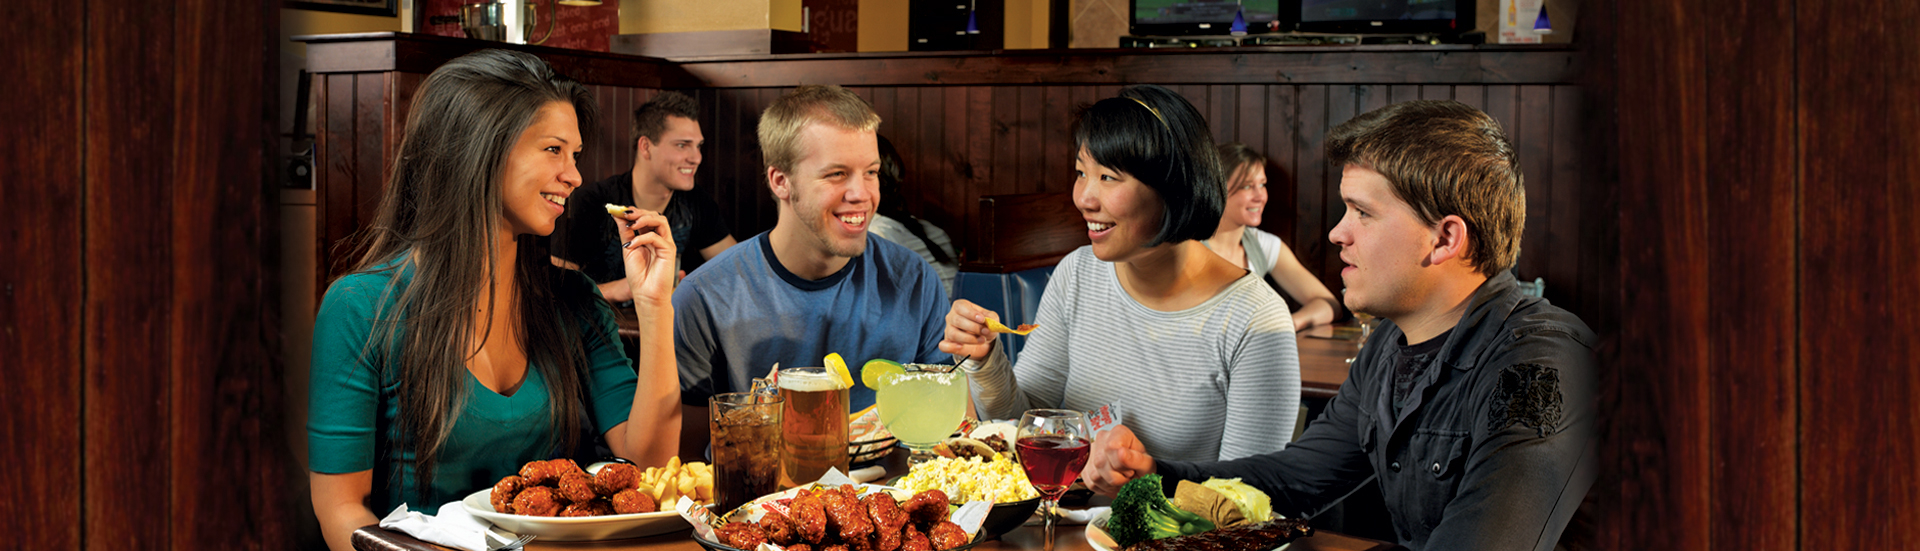 Have delicious food & fun when you go to your local WINGERS!